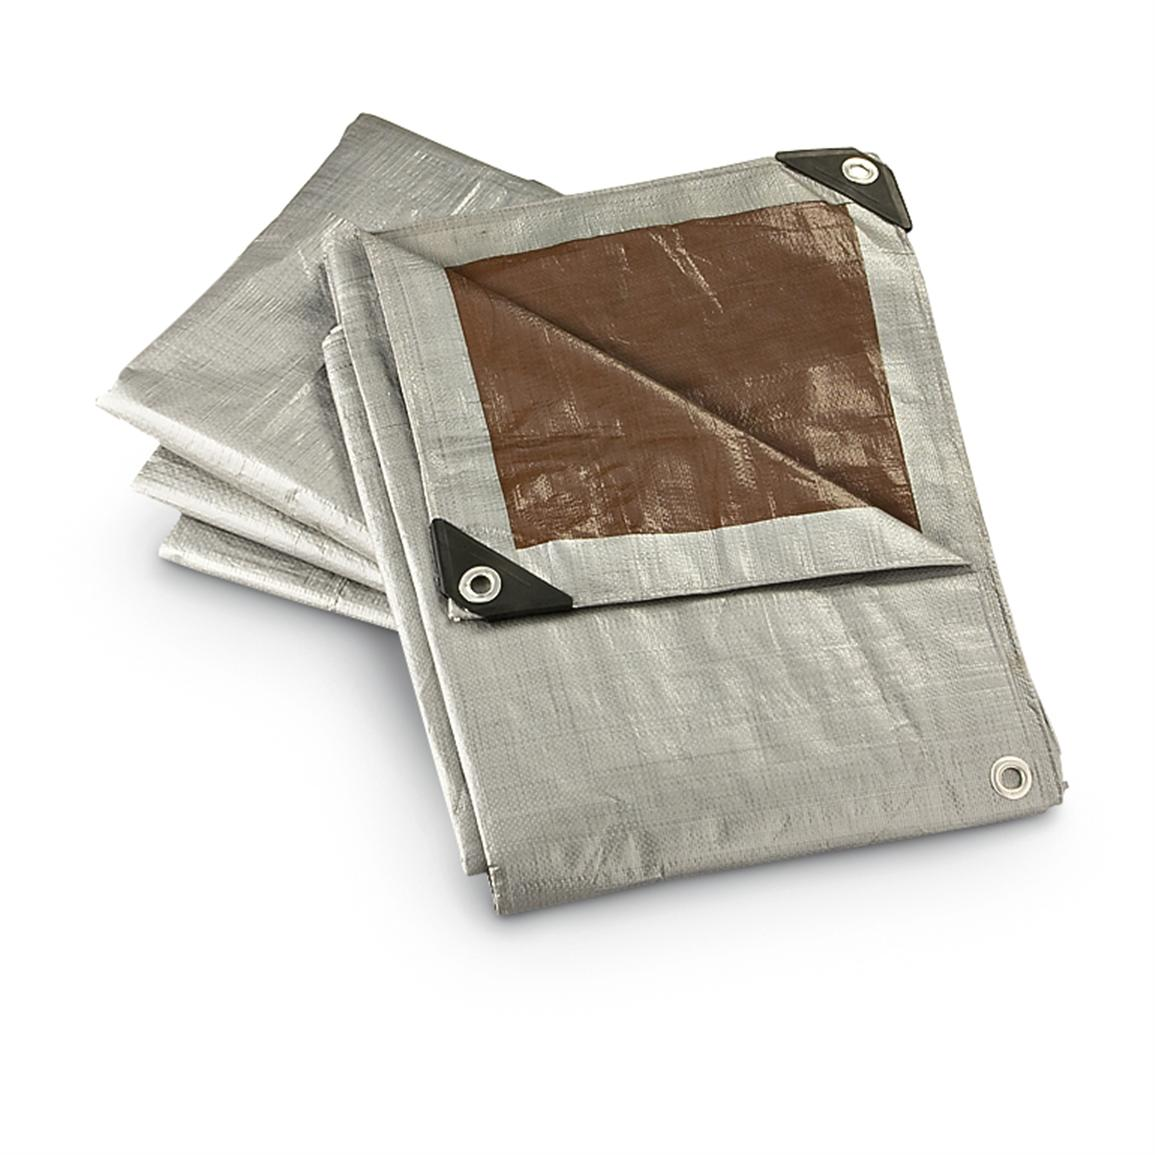 4 Heavy-duty 6x8' Tarps, Silver-tone / Brown